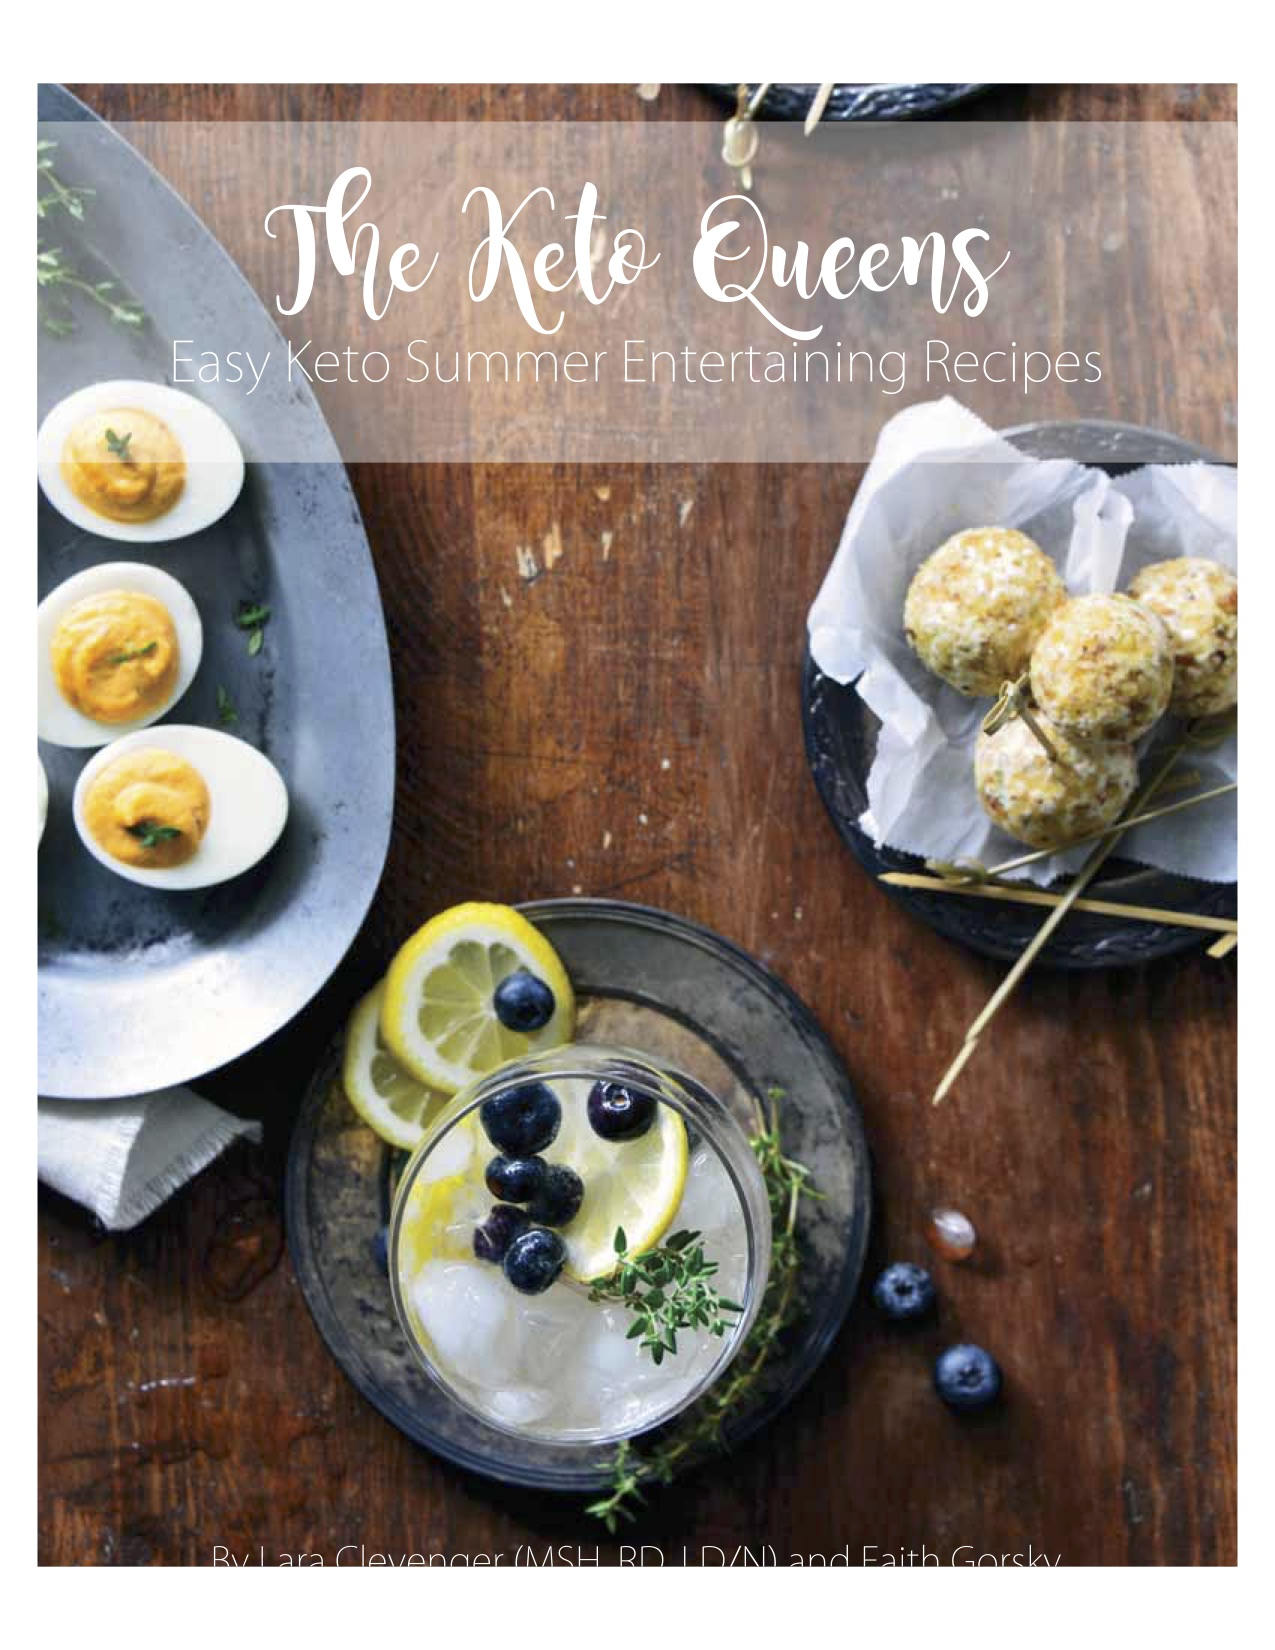 Easy Keto Summer Entertaining Recipes Ebook